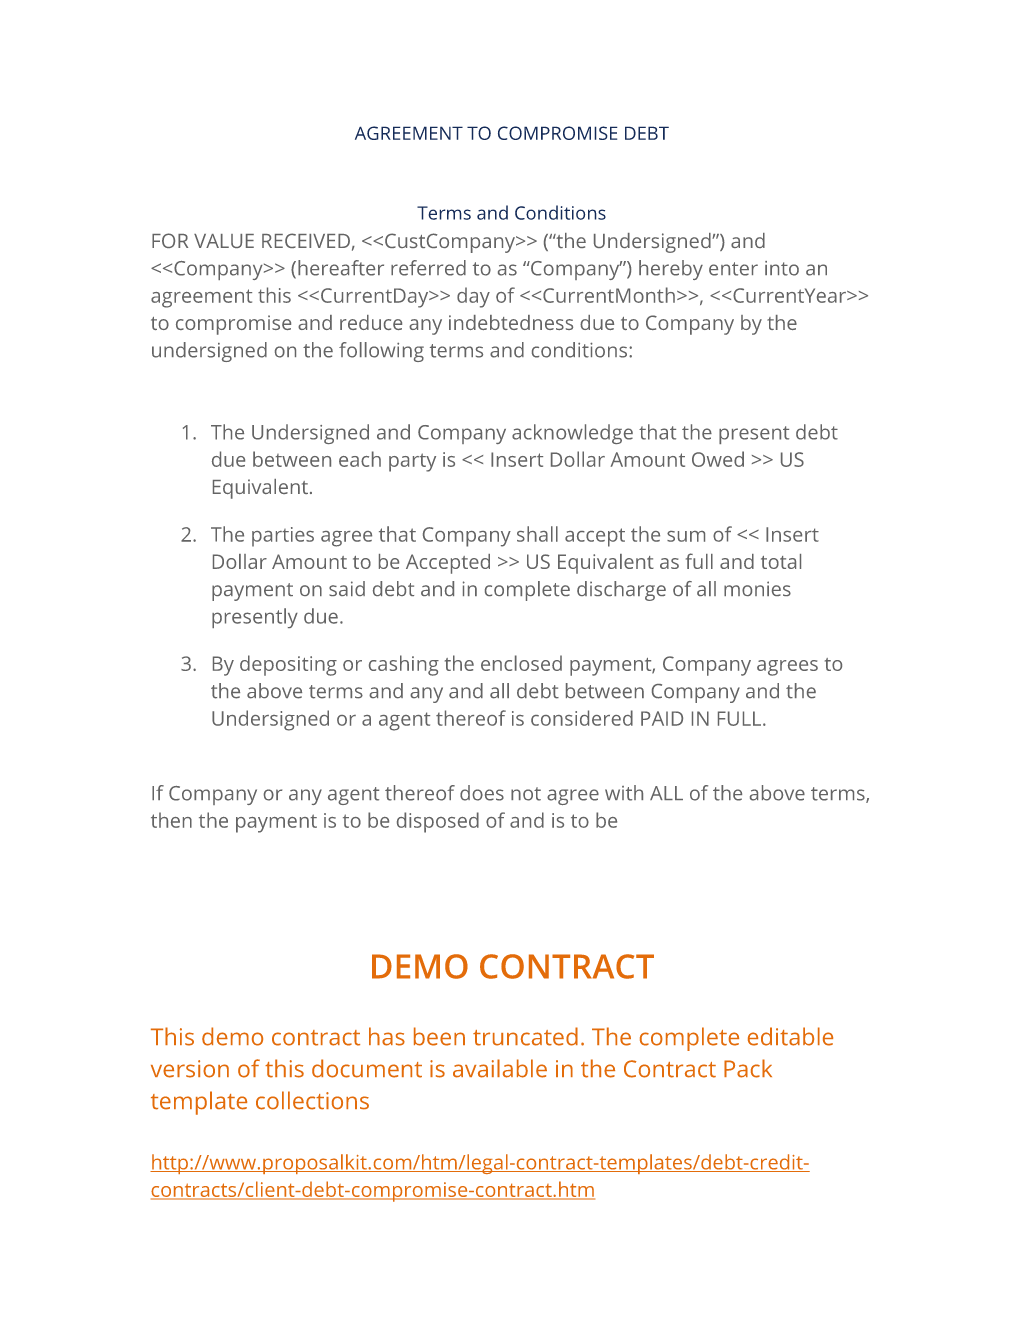 Client Debt Compromise Contract